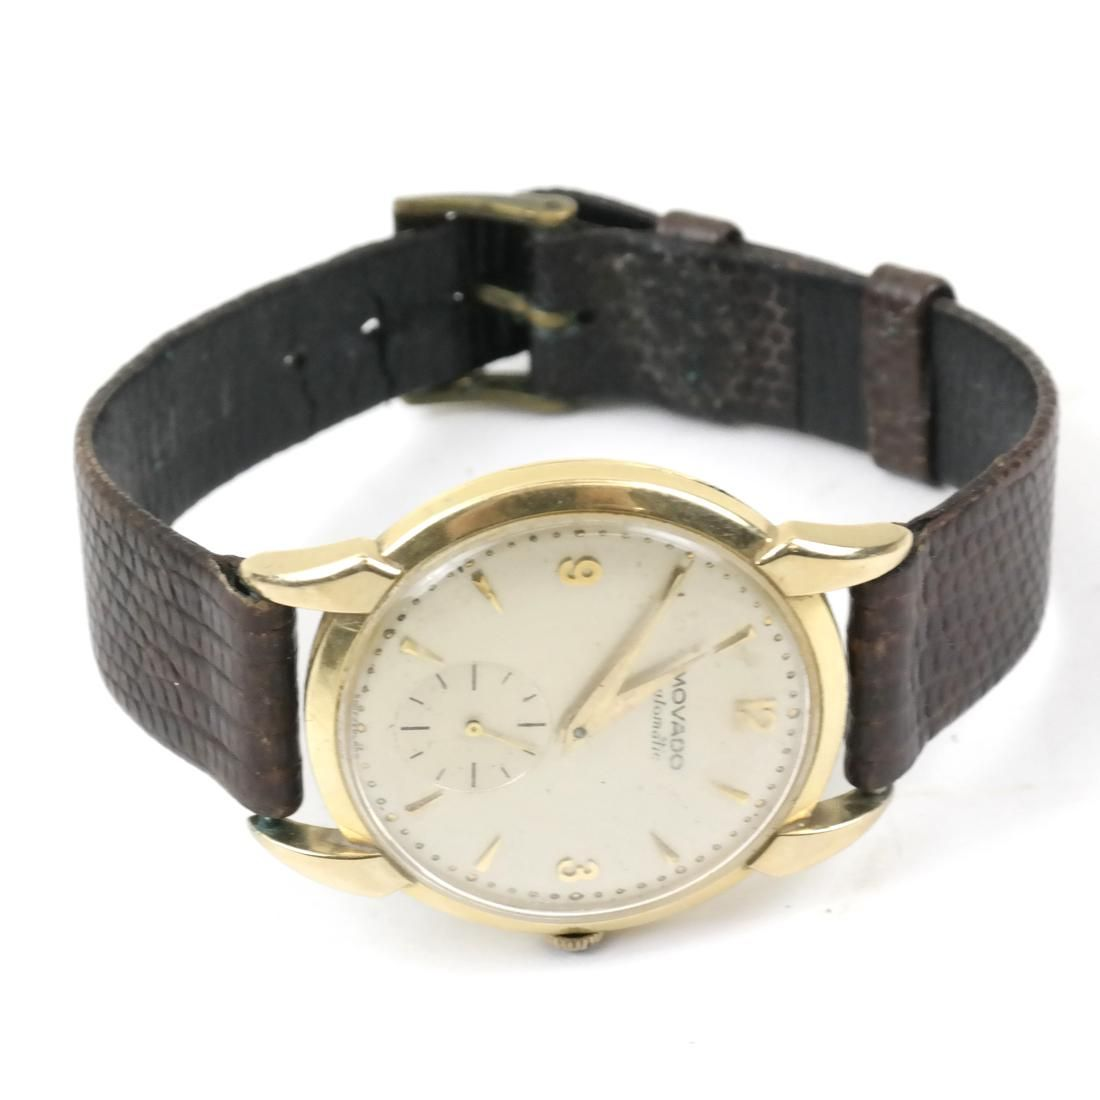 Movado Automatic Gold-Filled Men's Wrist Watch